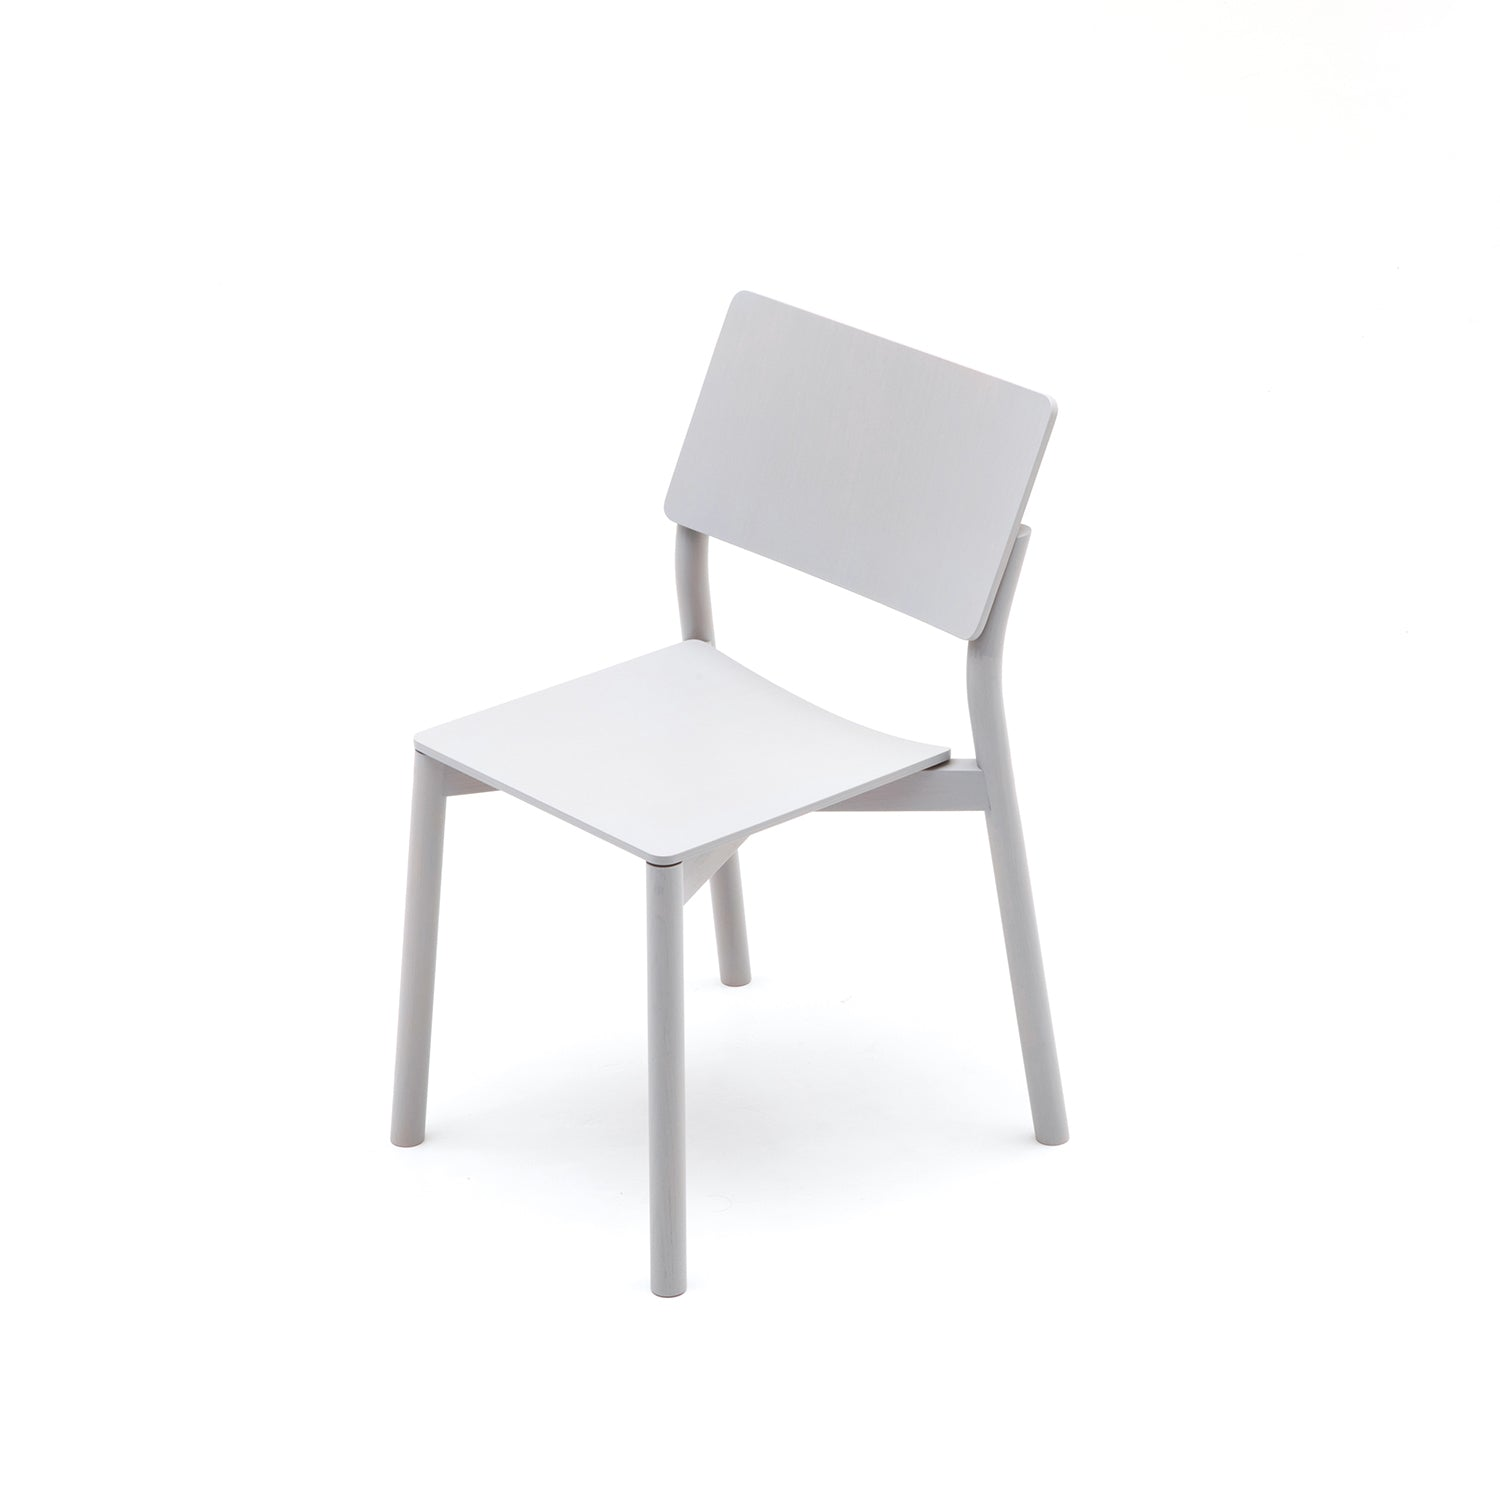 Panorama Chair: Grain Grey Oak